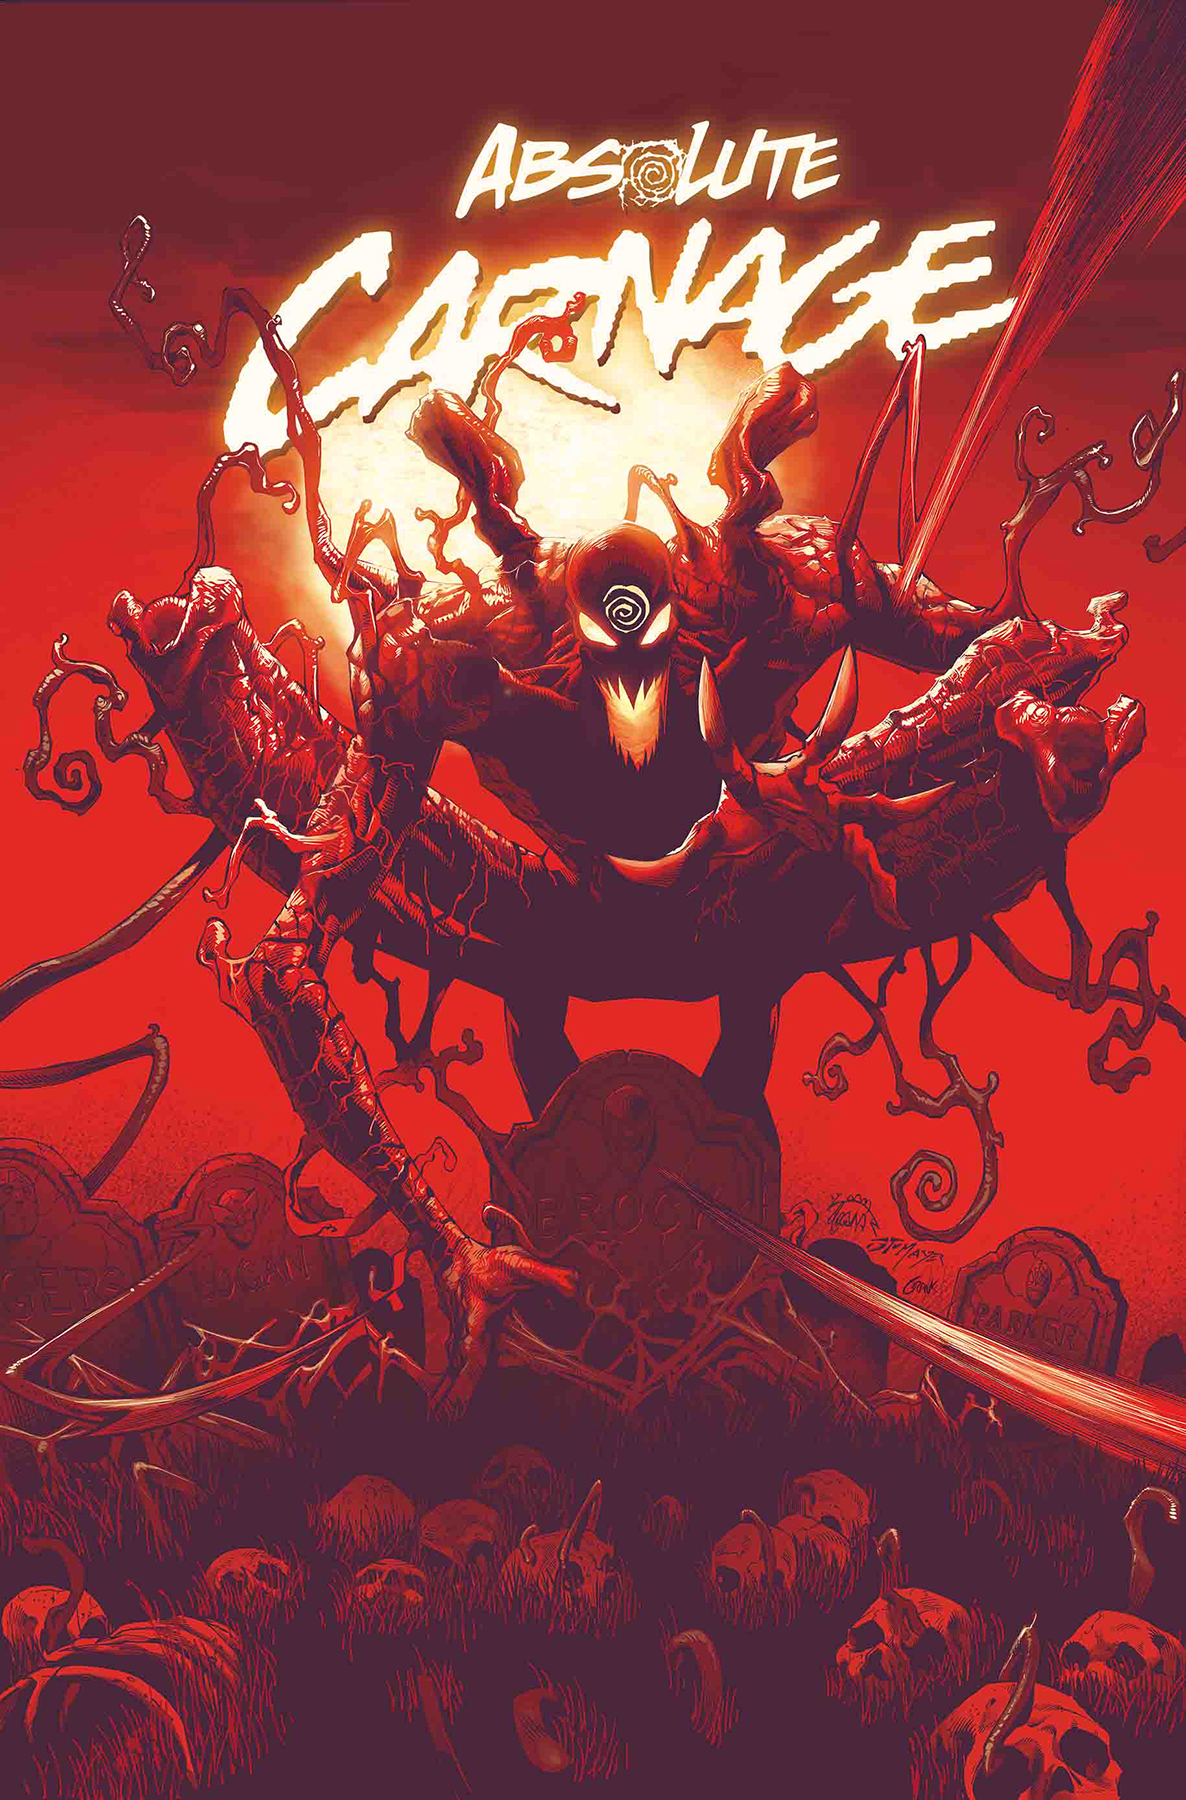 JUN190761 - ABSOLUTE CARNAGE #1 (OF 5) AC - Previews World